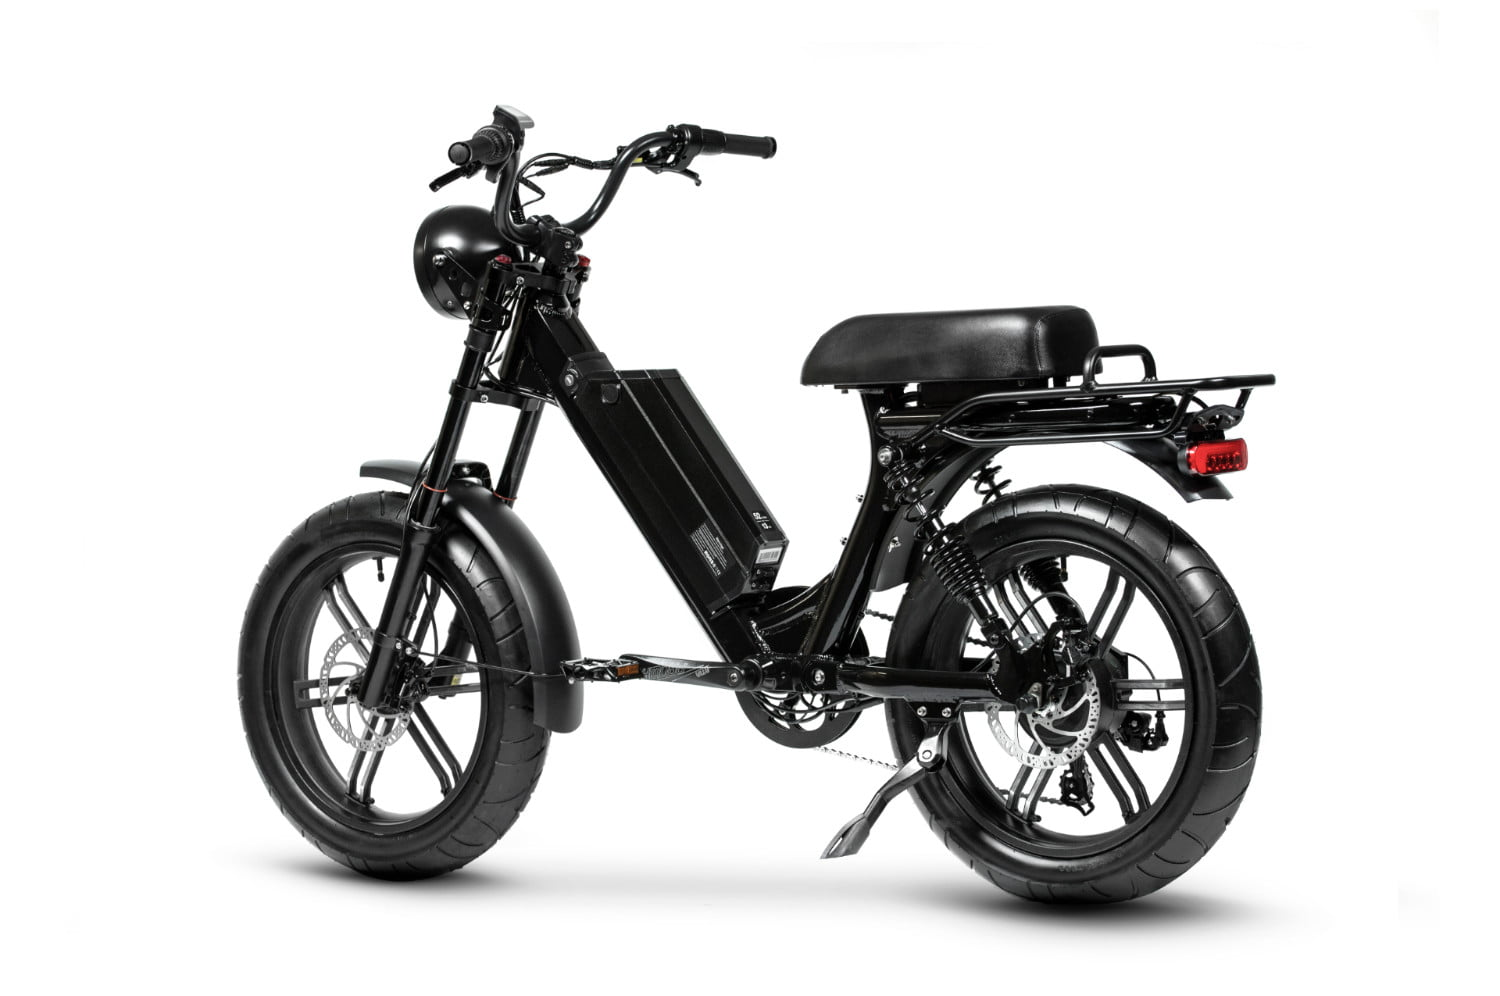 juiced bikes scorpion moped style e bike packs performance safety and comfort 02